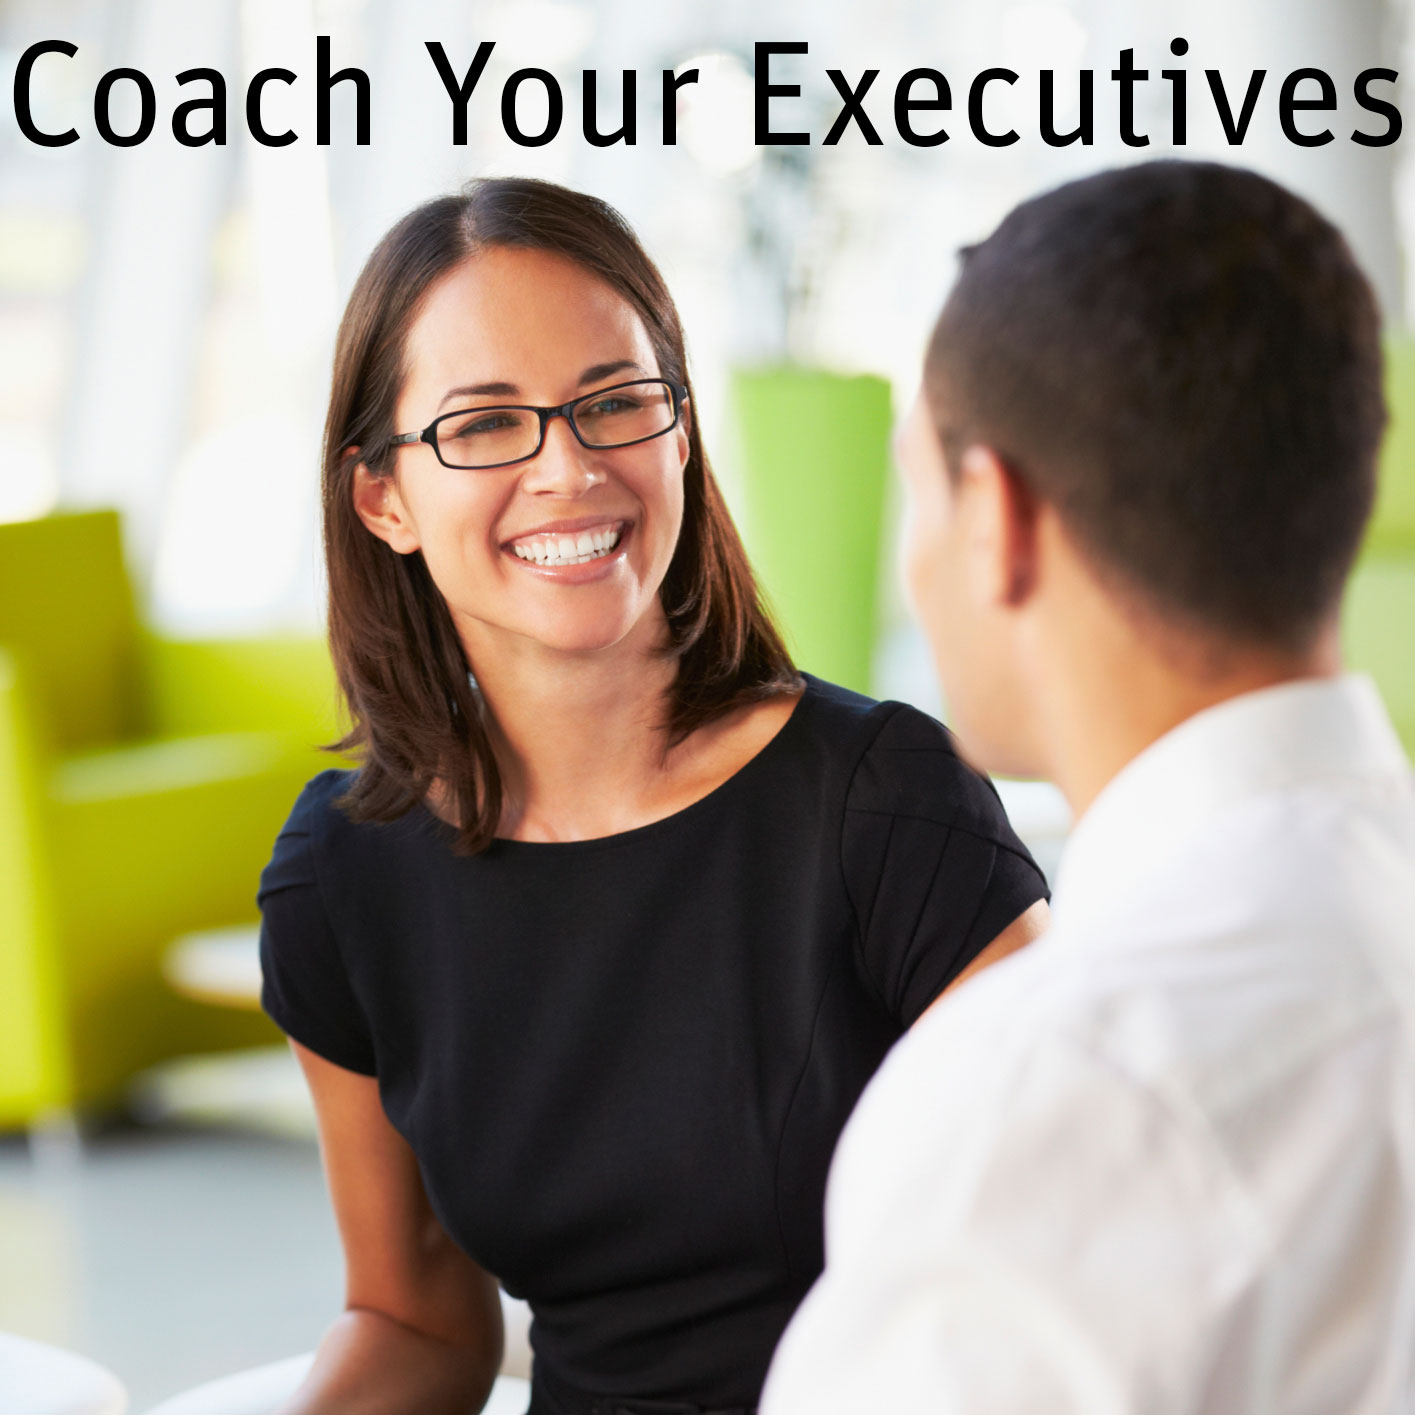 Coach-Your-Executives.jpg